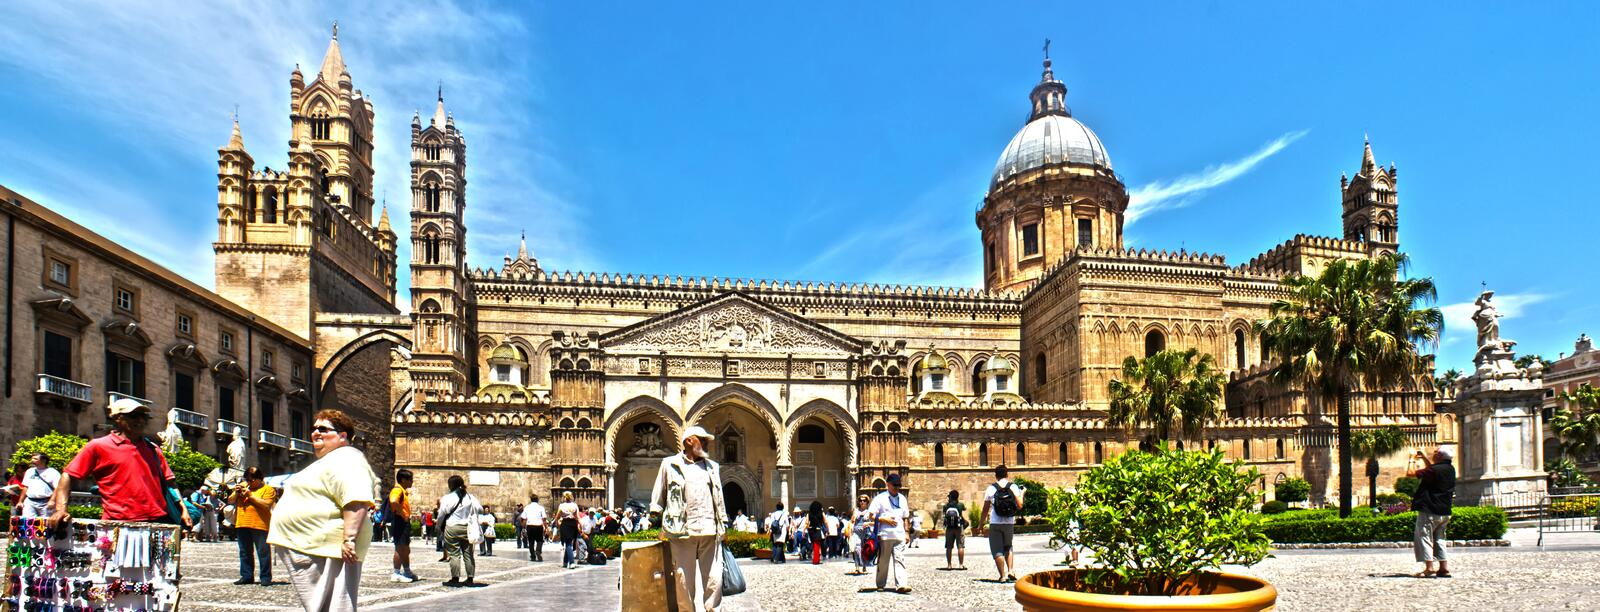 Palermo Cathedral photomerge. PALERMO - May 28 , THOUSANDS OF TOURISTS IN EVERY DAY VISIT TO THE CATHEDRAL OF PALERMO, 28 May 2011, Sicily, Italy royalty free stock photography